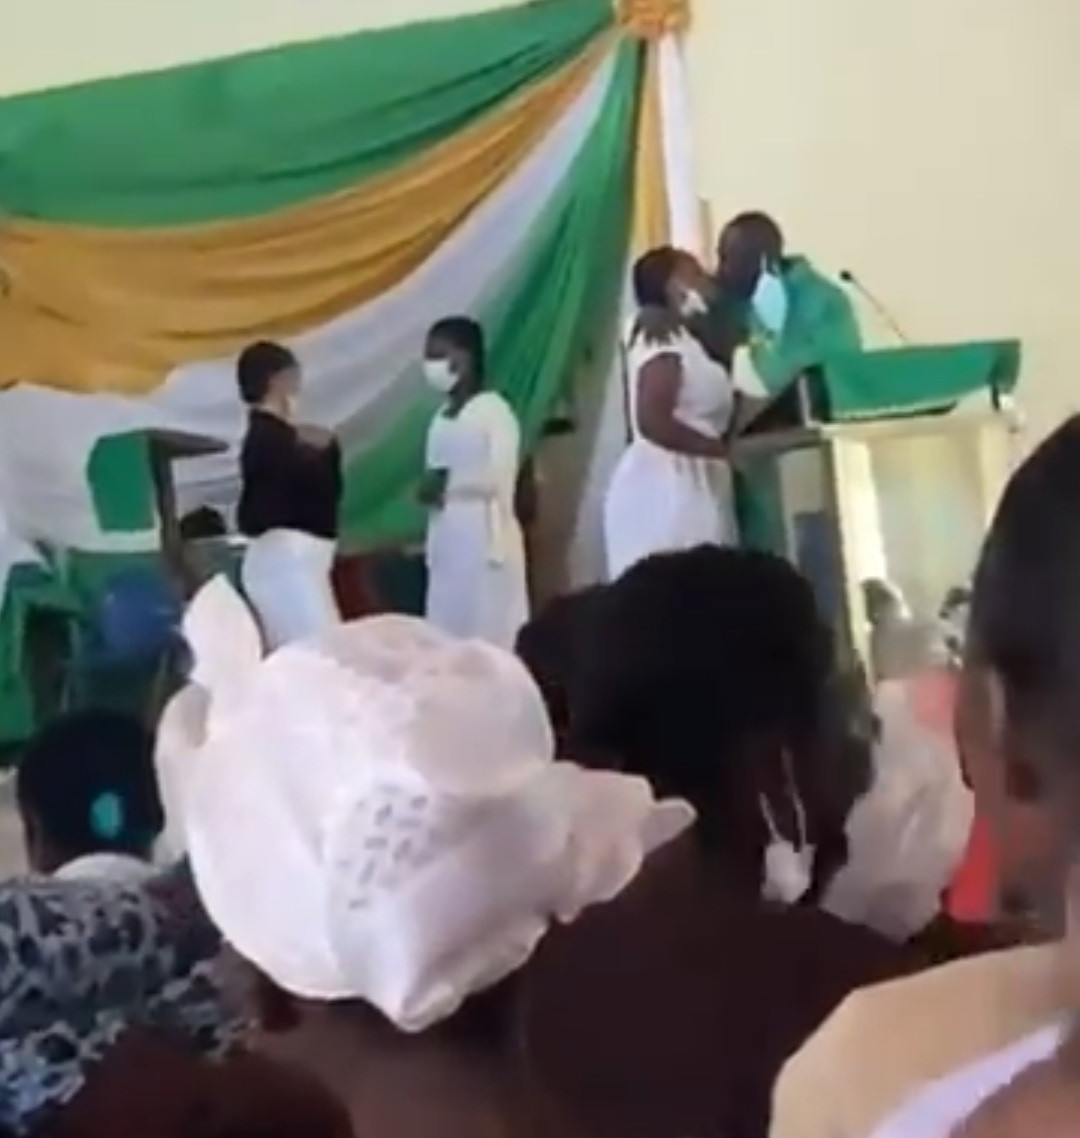 Priest filmed kissing female students on the mouth inside the church in a viral video